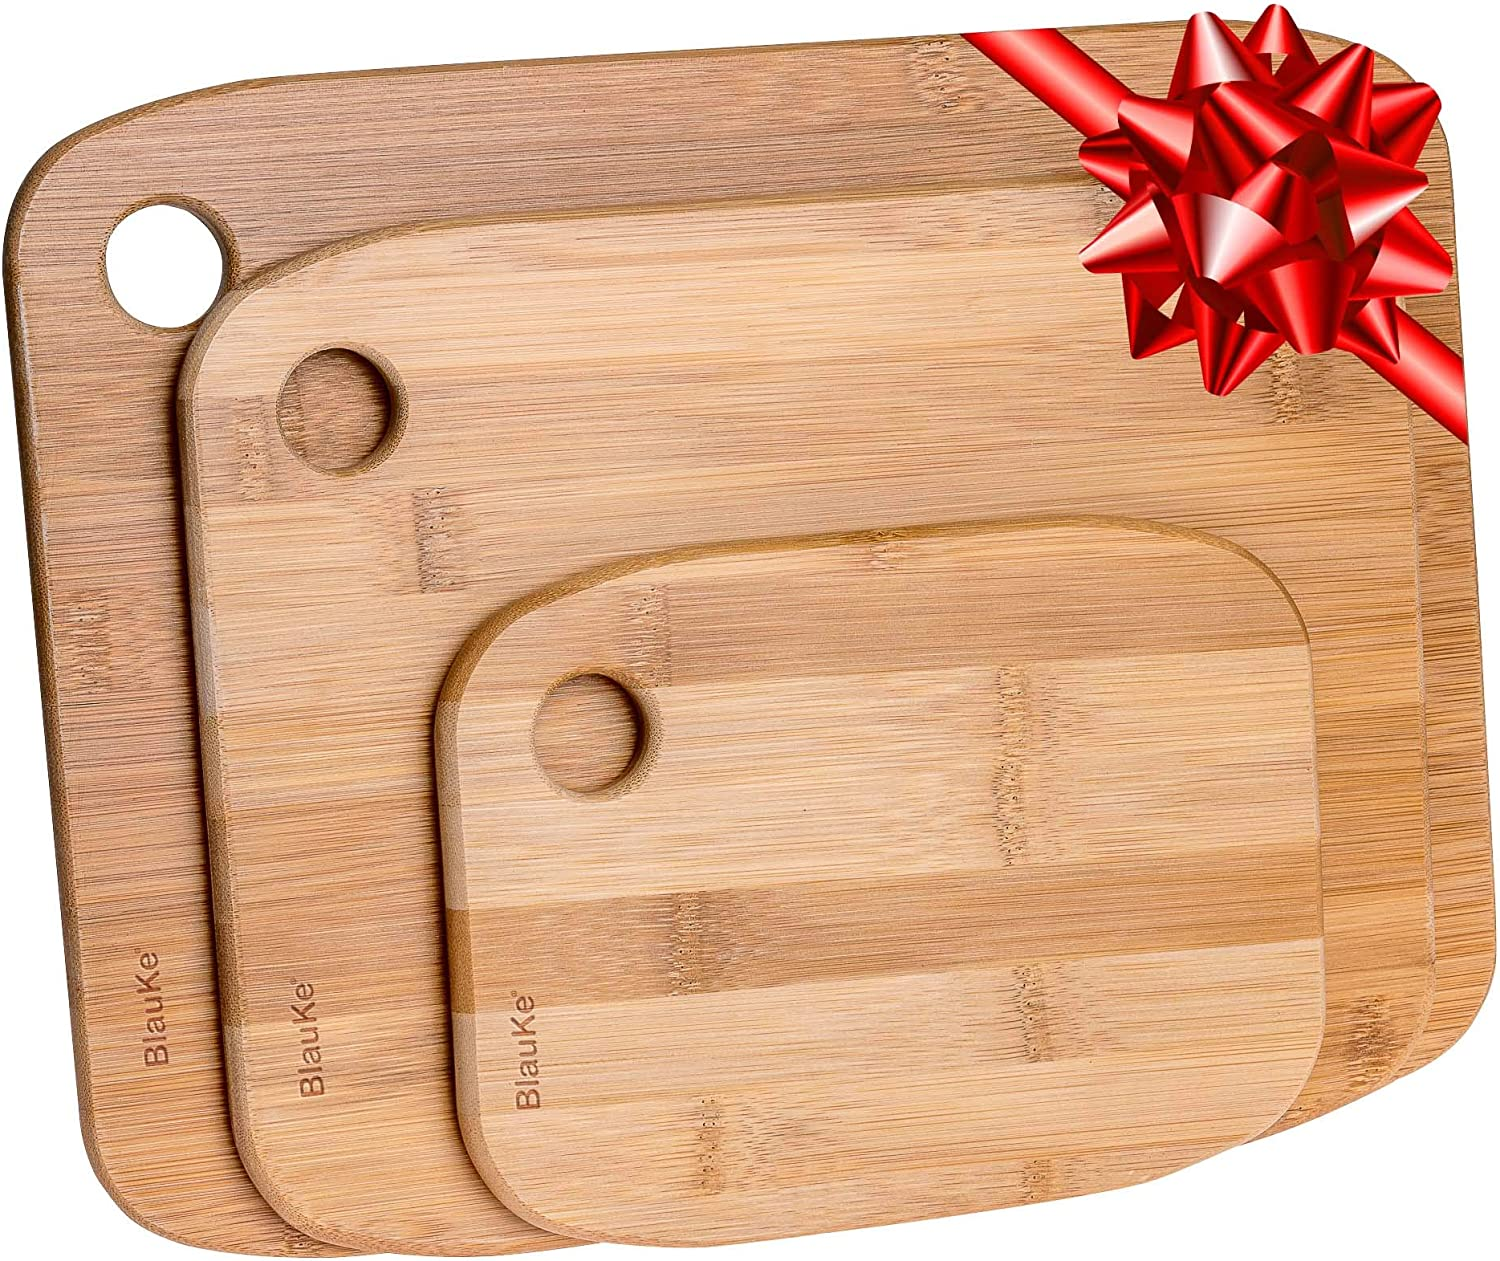 Bamboo Cutting Board Set of for 3 Directly managed store Max 63% OFF Chees Wood Meat